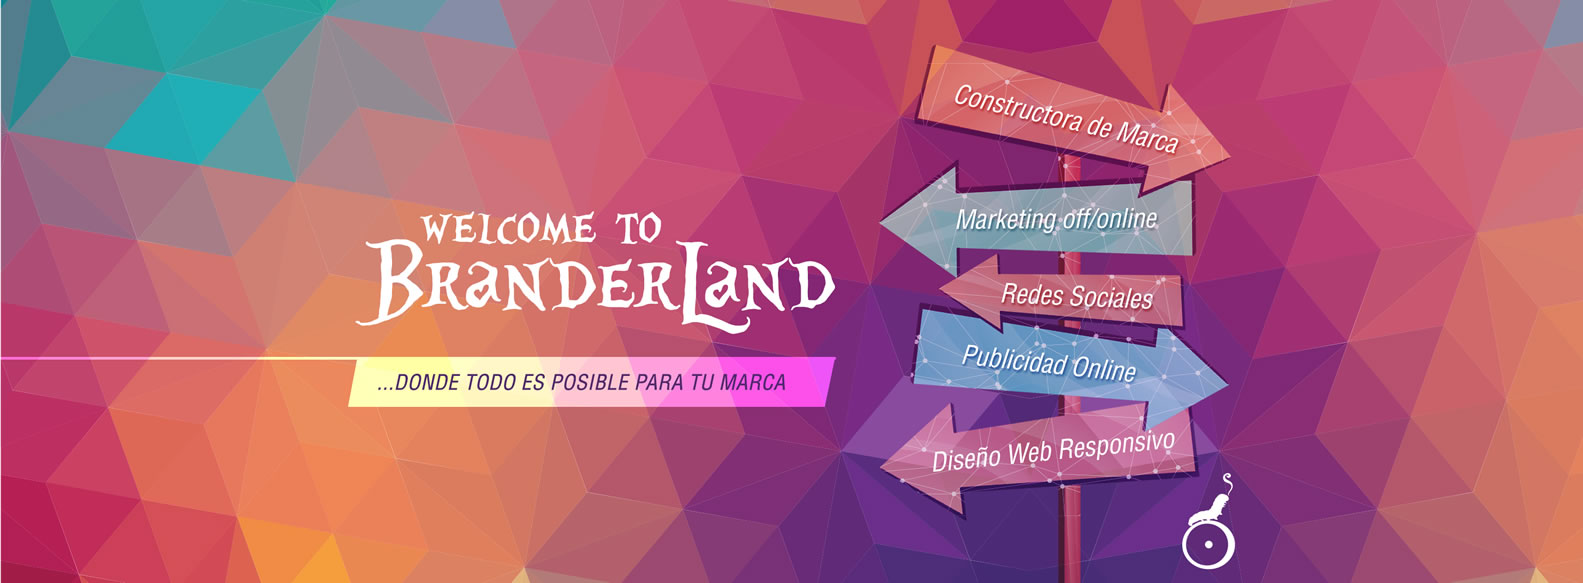 welcome-to-branderland